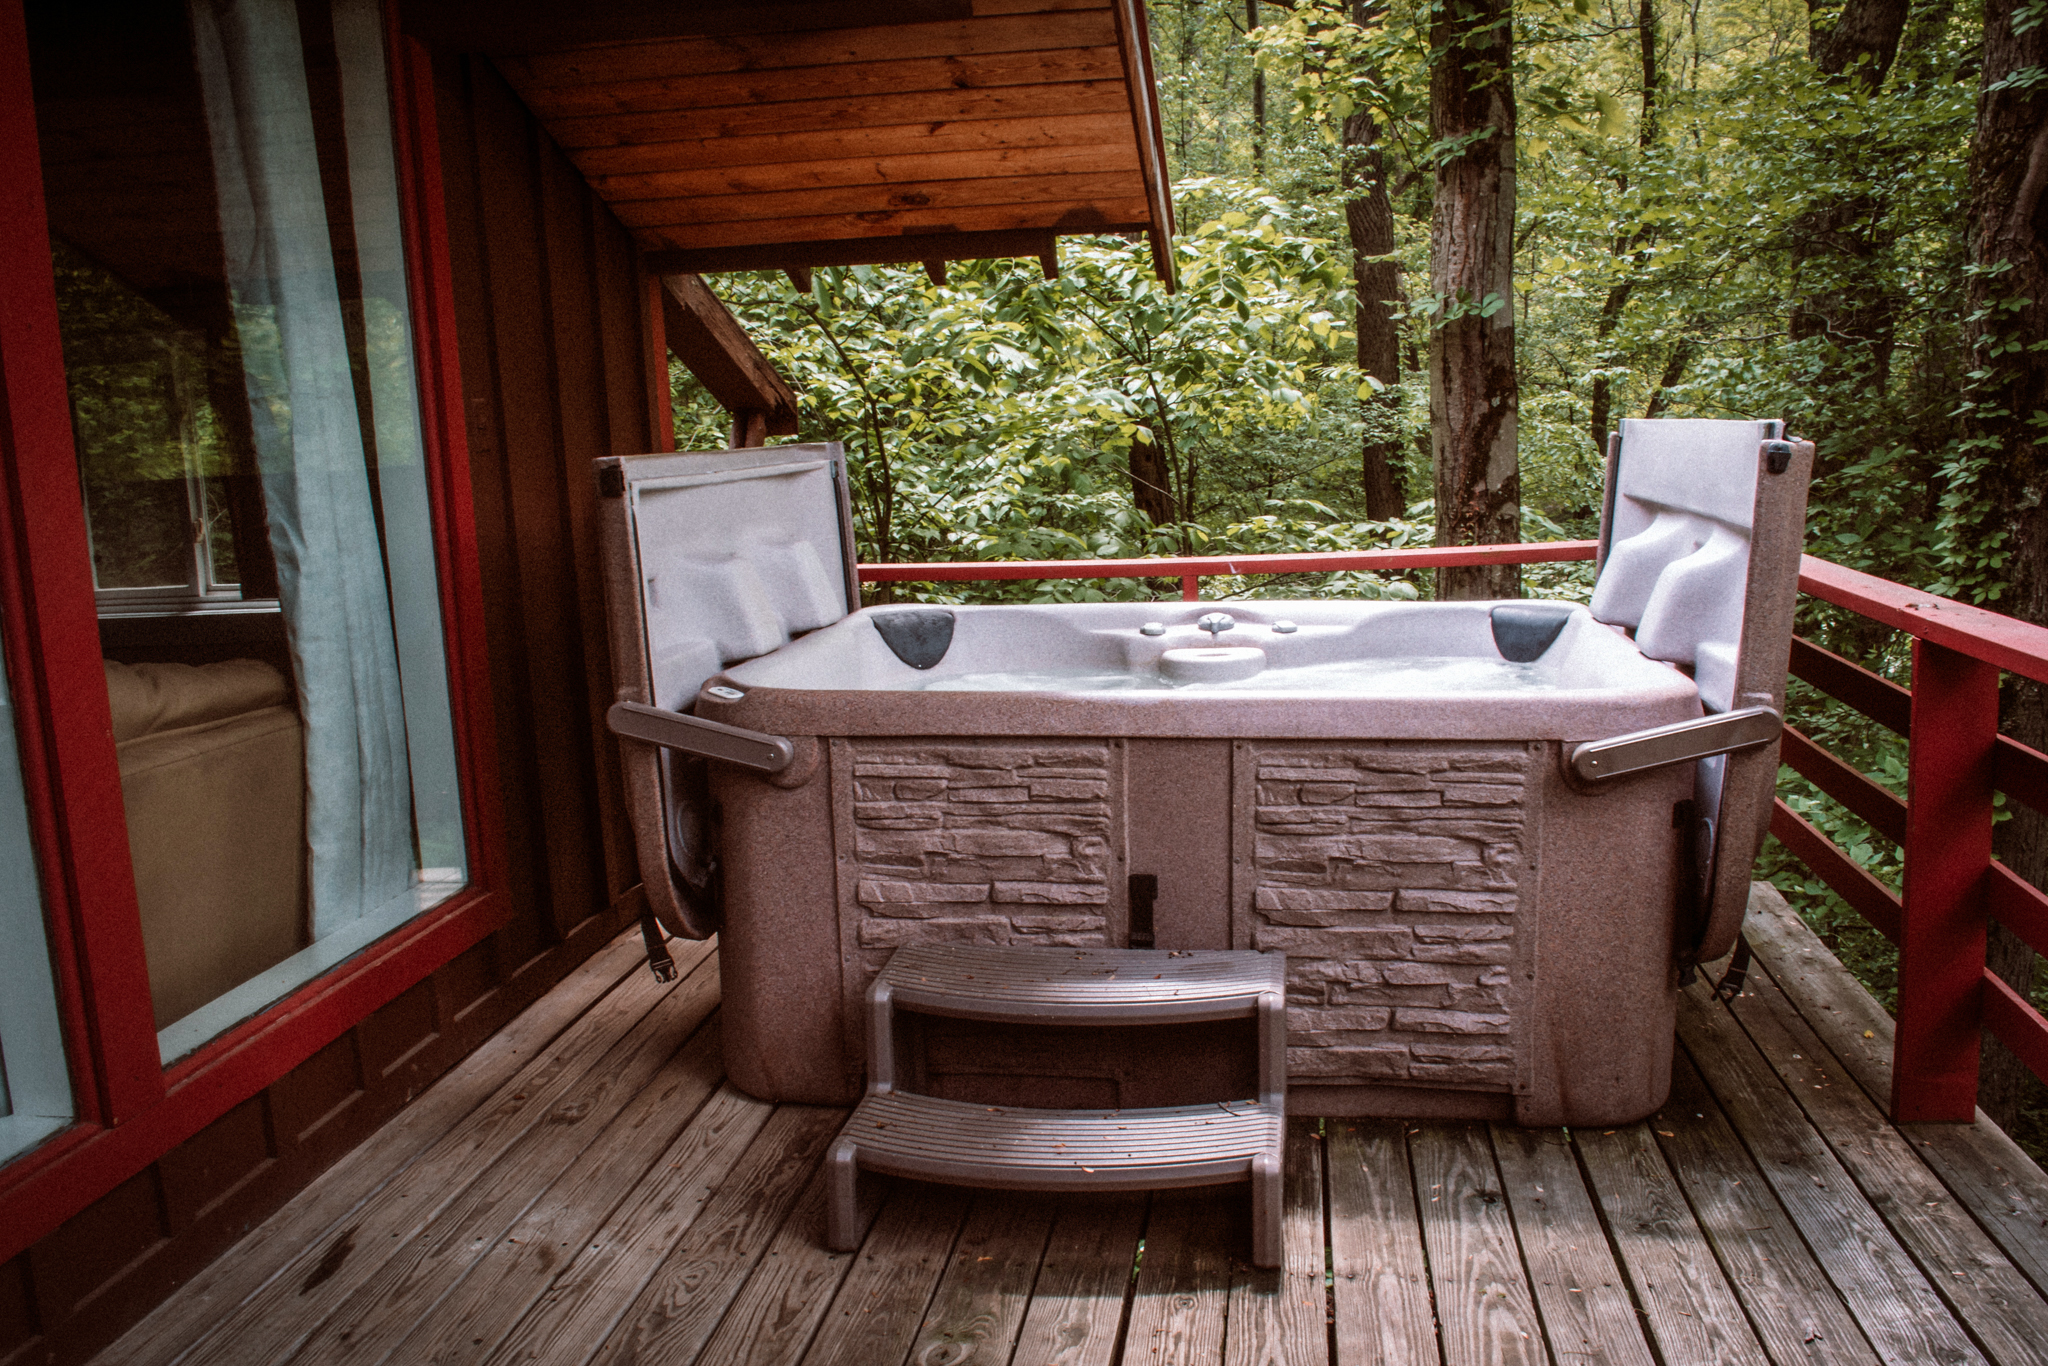 Hot Tub - Have a seat!